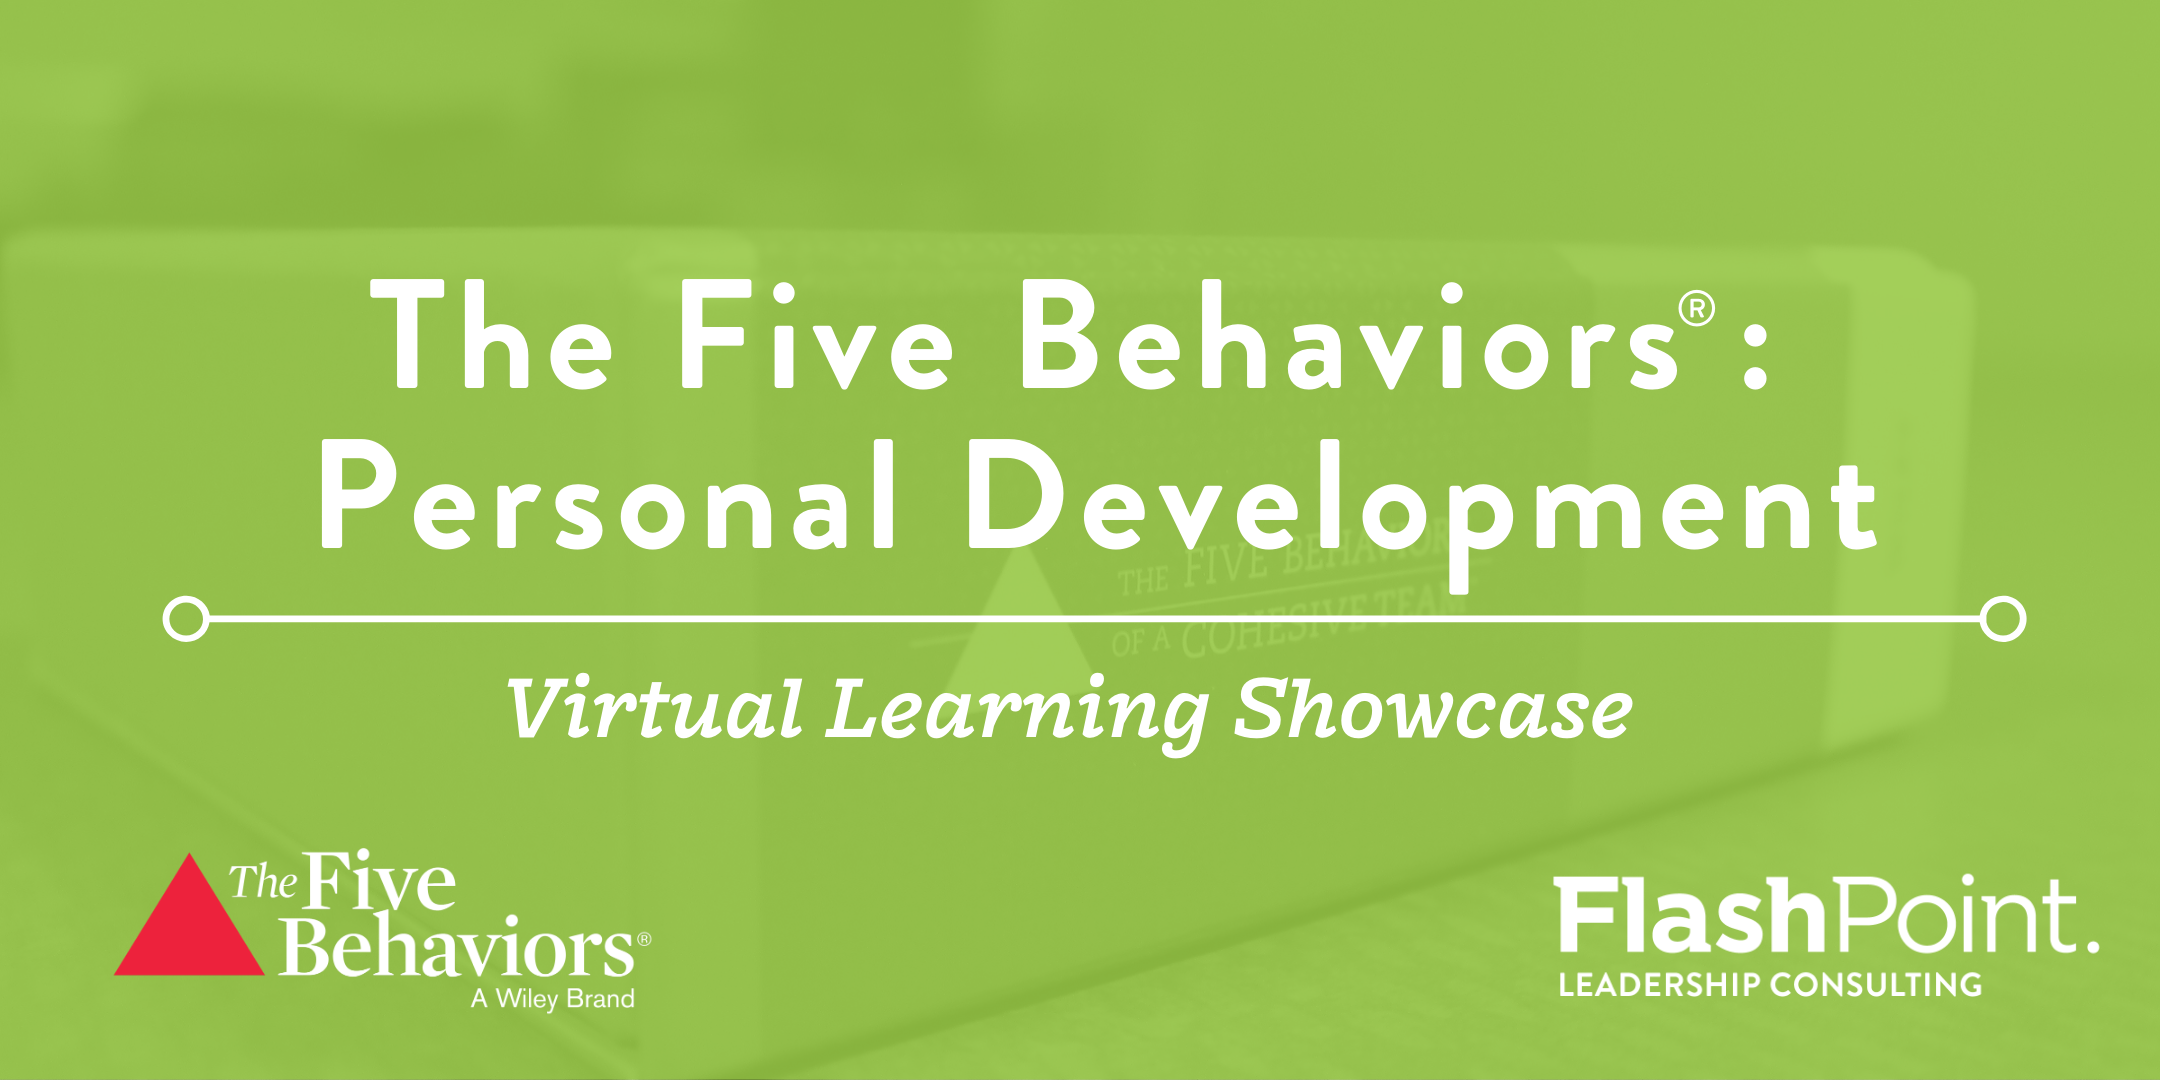 The Five Behaviors Personal Development Virtual Showcase